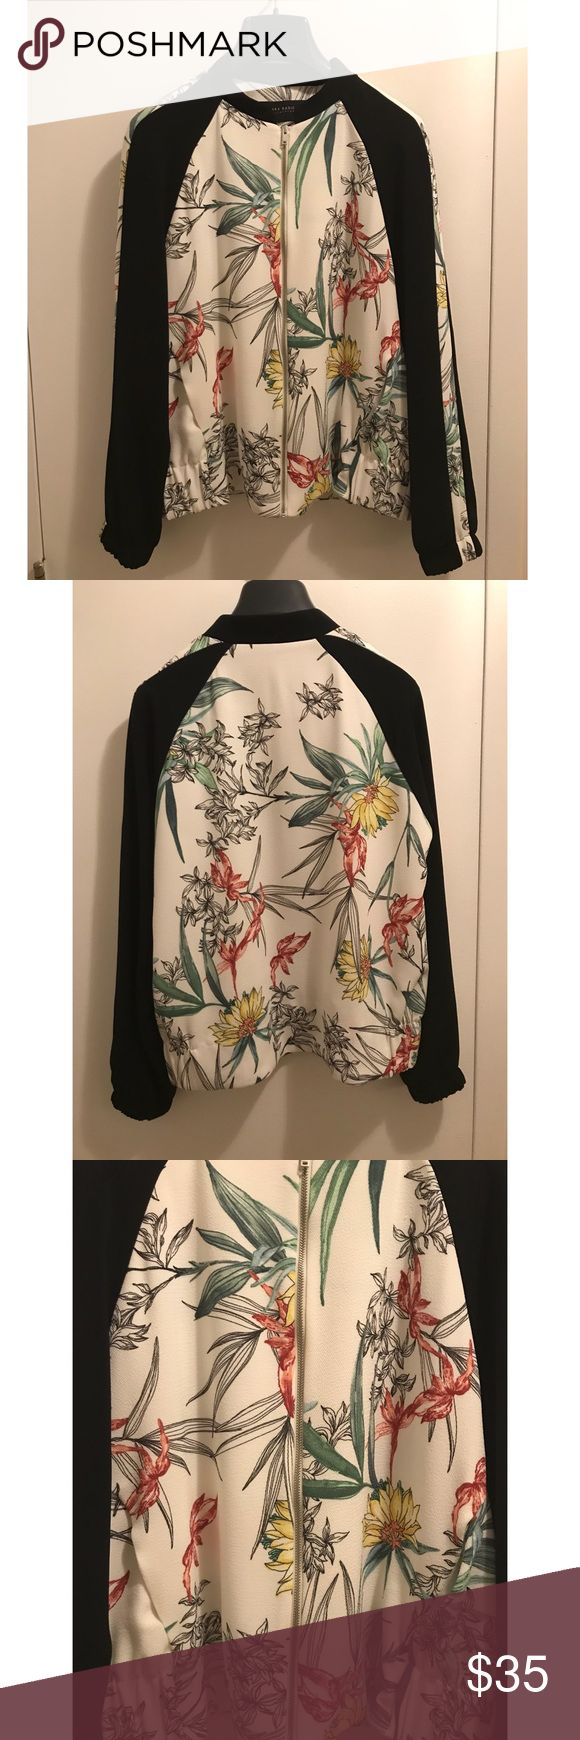 Zara Bomber Jacket Super cute 😍 printed jacket with bomber collar. Features long sleeves, elastic cuffs and hem. It also has two front pockets. It's very light weight. And I have only worn it twice 😁 Zara Jackets & Coats